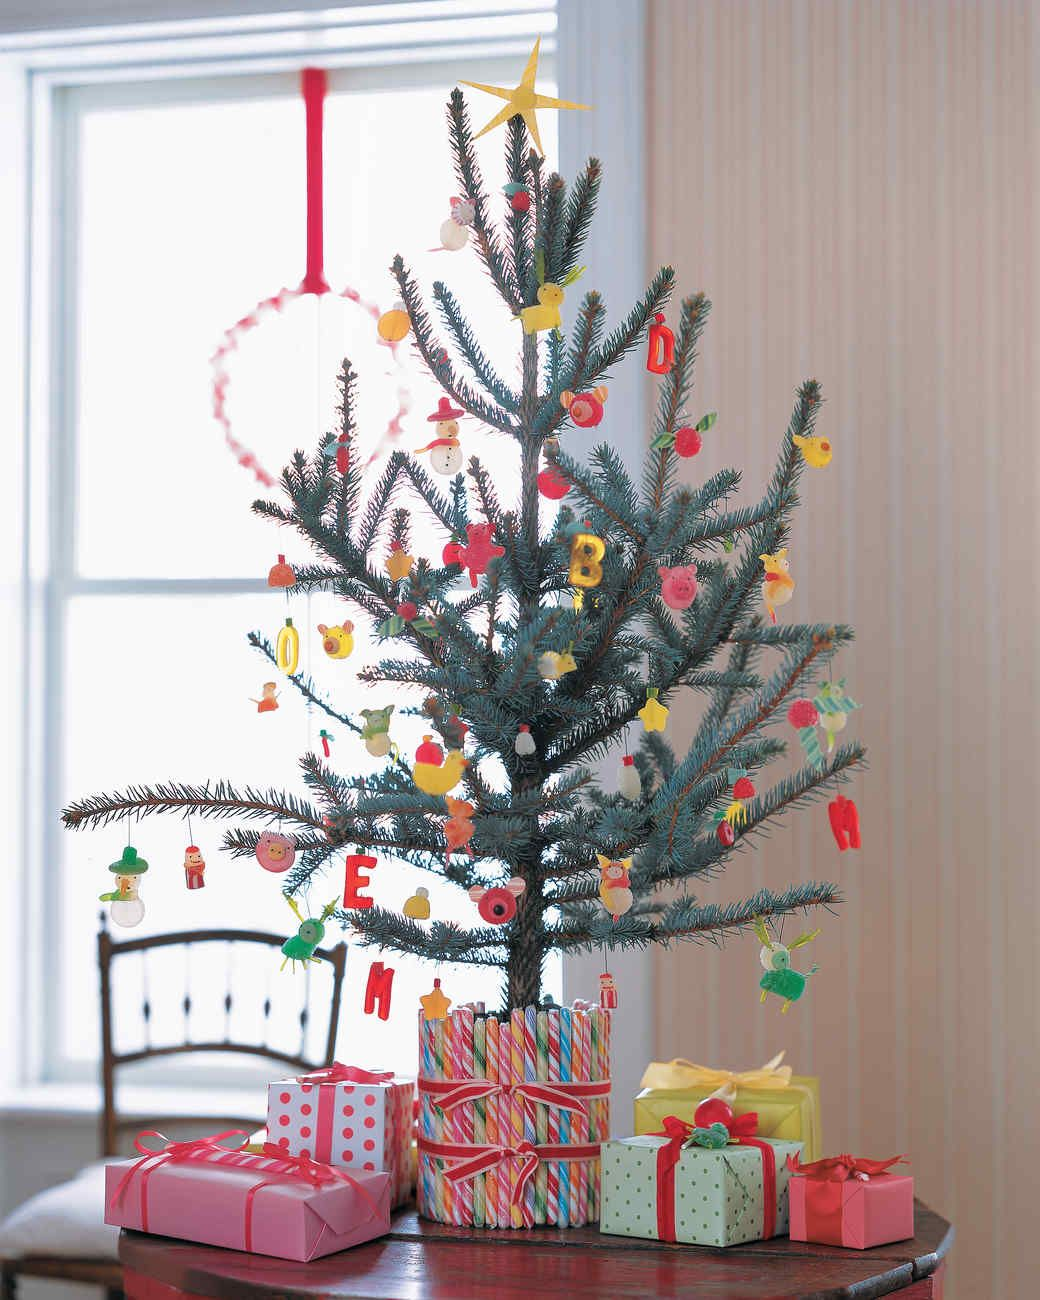 Diy Christmas Decorations Easy, Creative